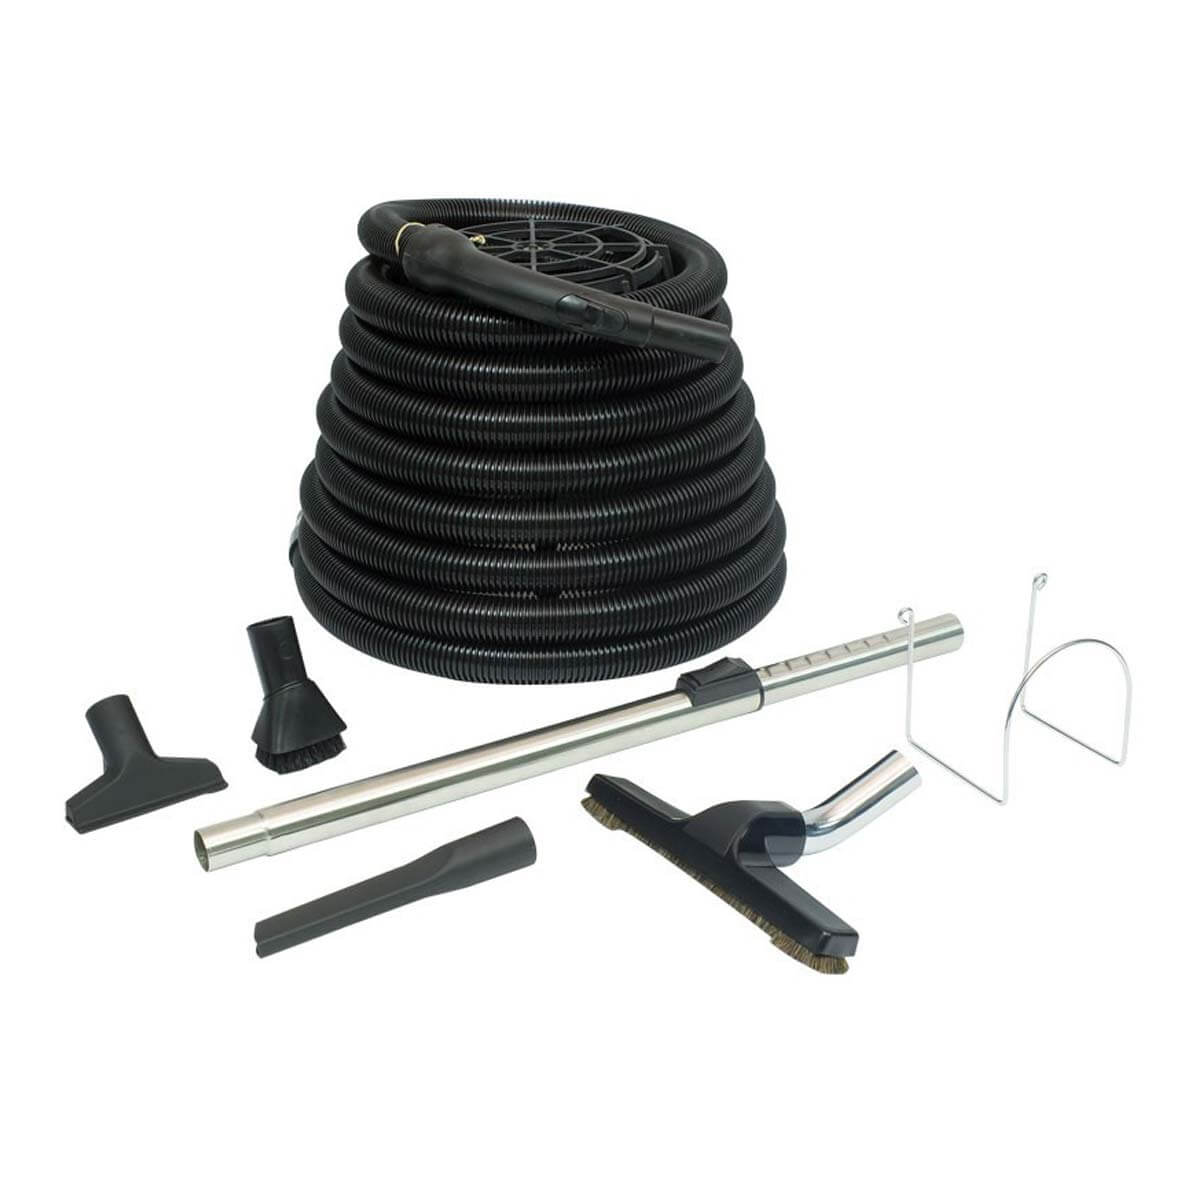 ENSEMBLE POUR ASPIRATEUR CENTRAL DE GARAGE DELUXE